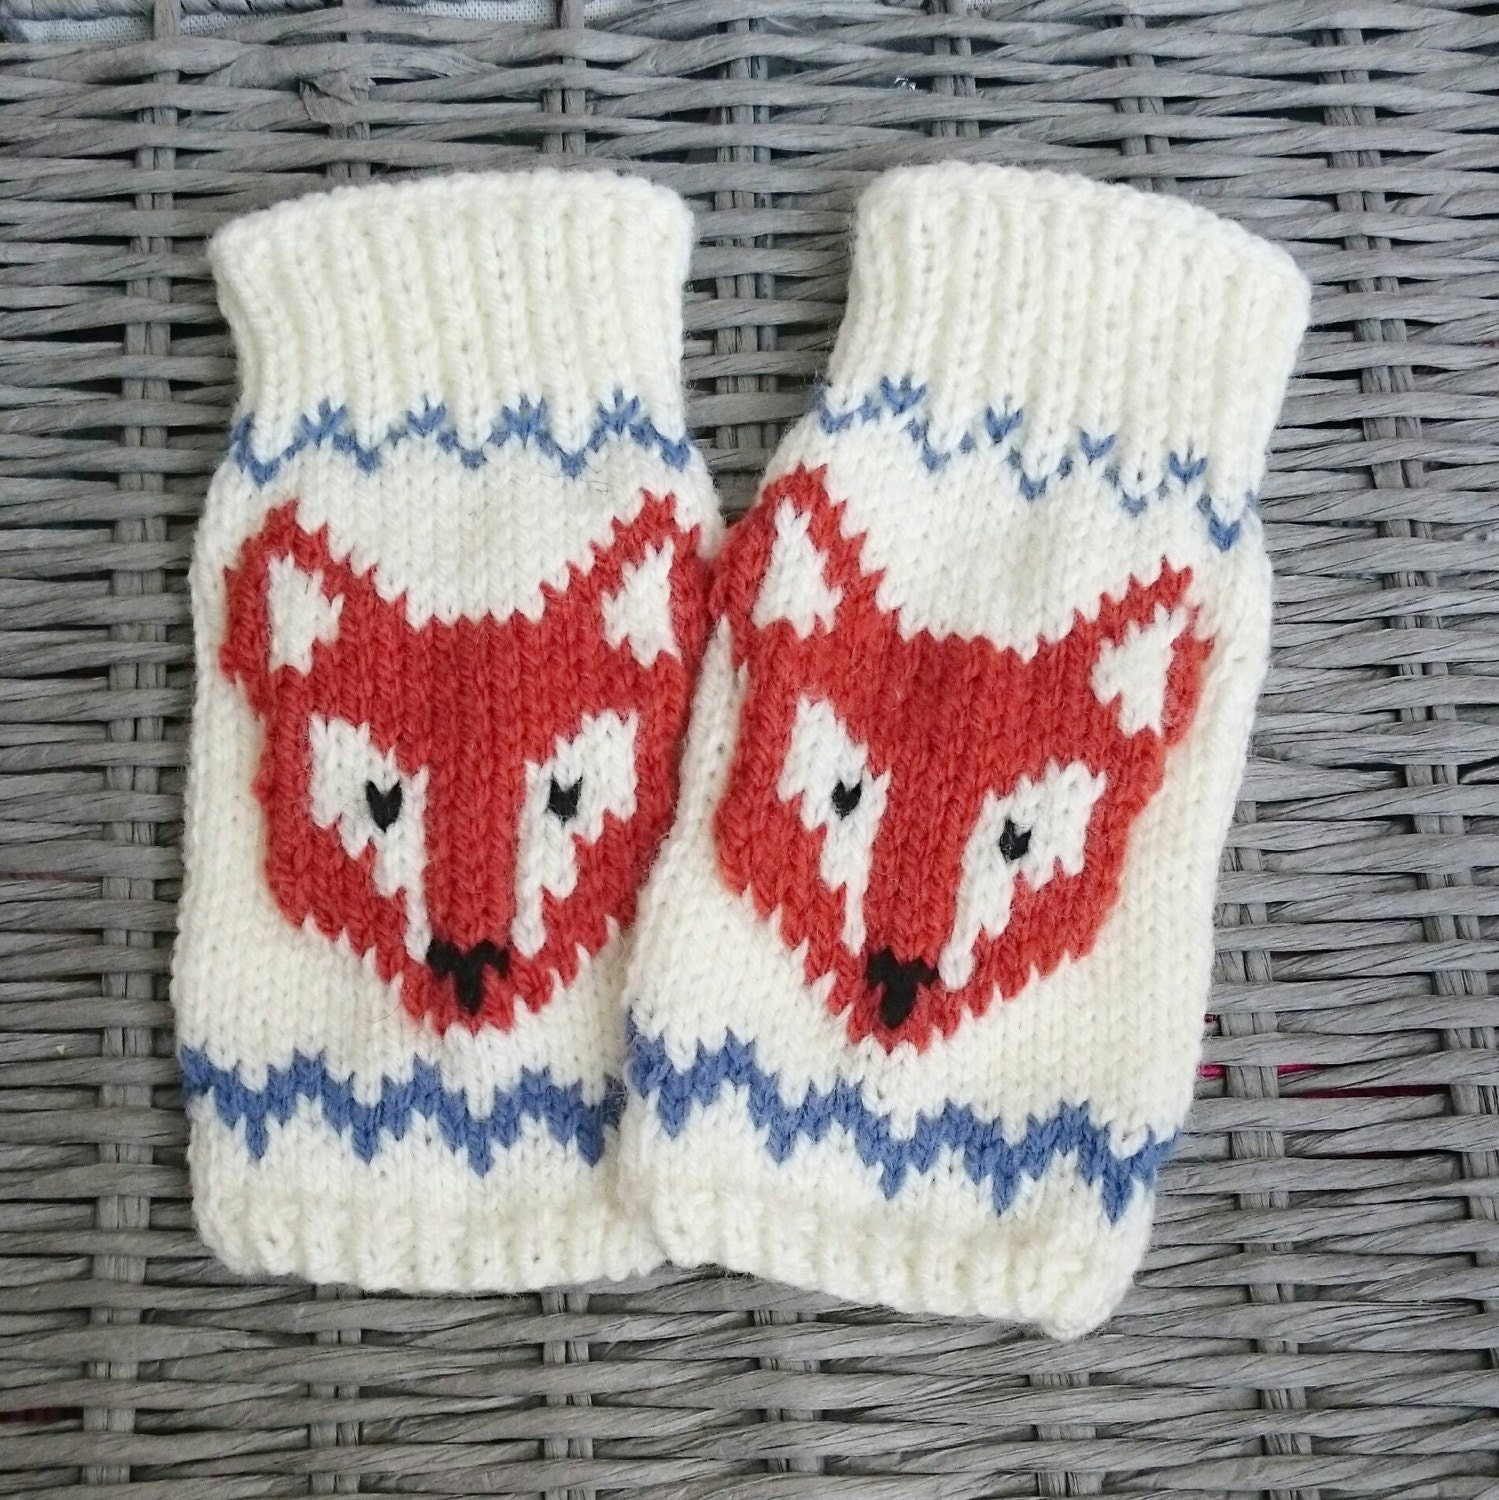 Knitting Pattern For Fox Mittens : Knitted Fingerless Fox Gloves Gloves Mittens Wrist